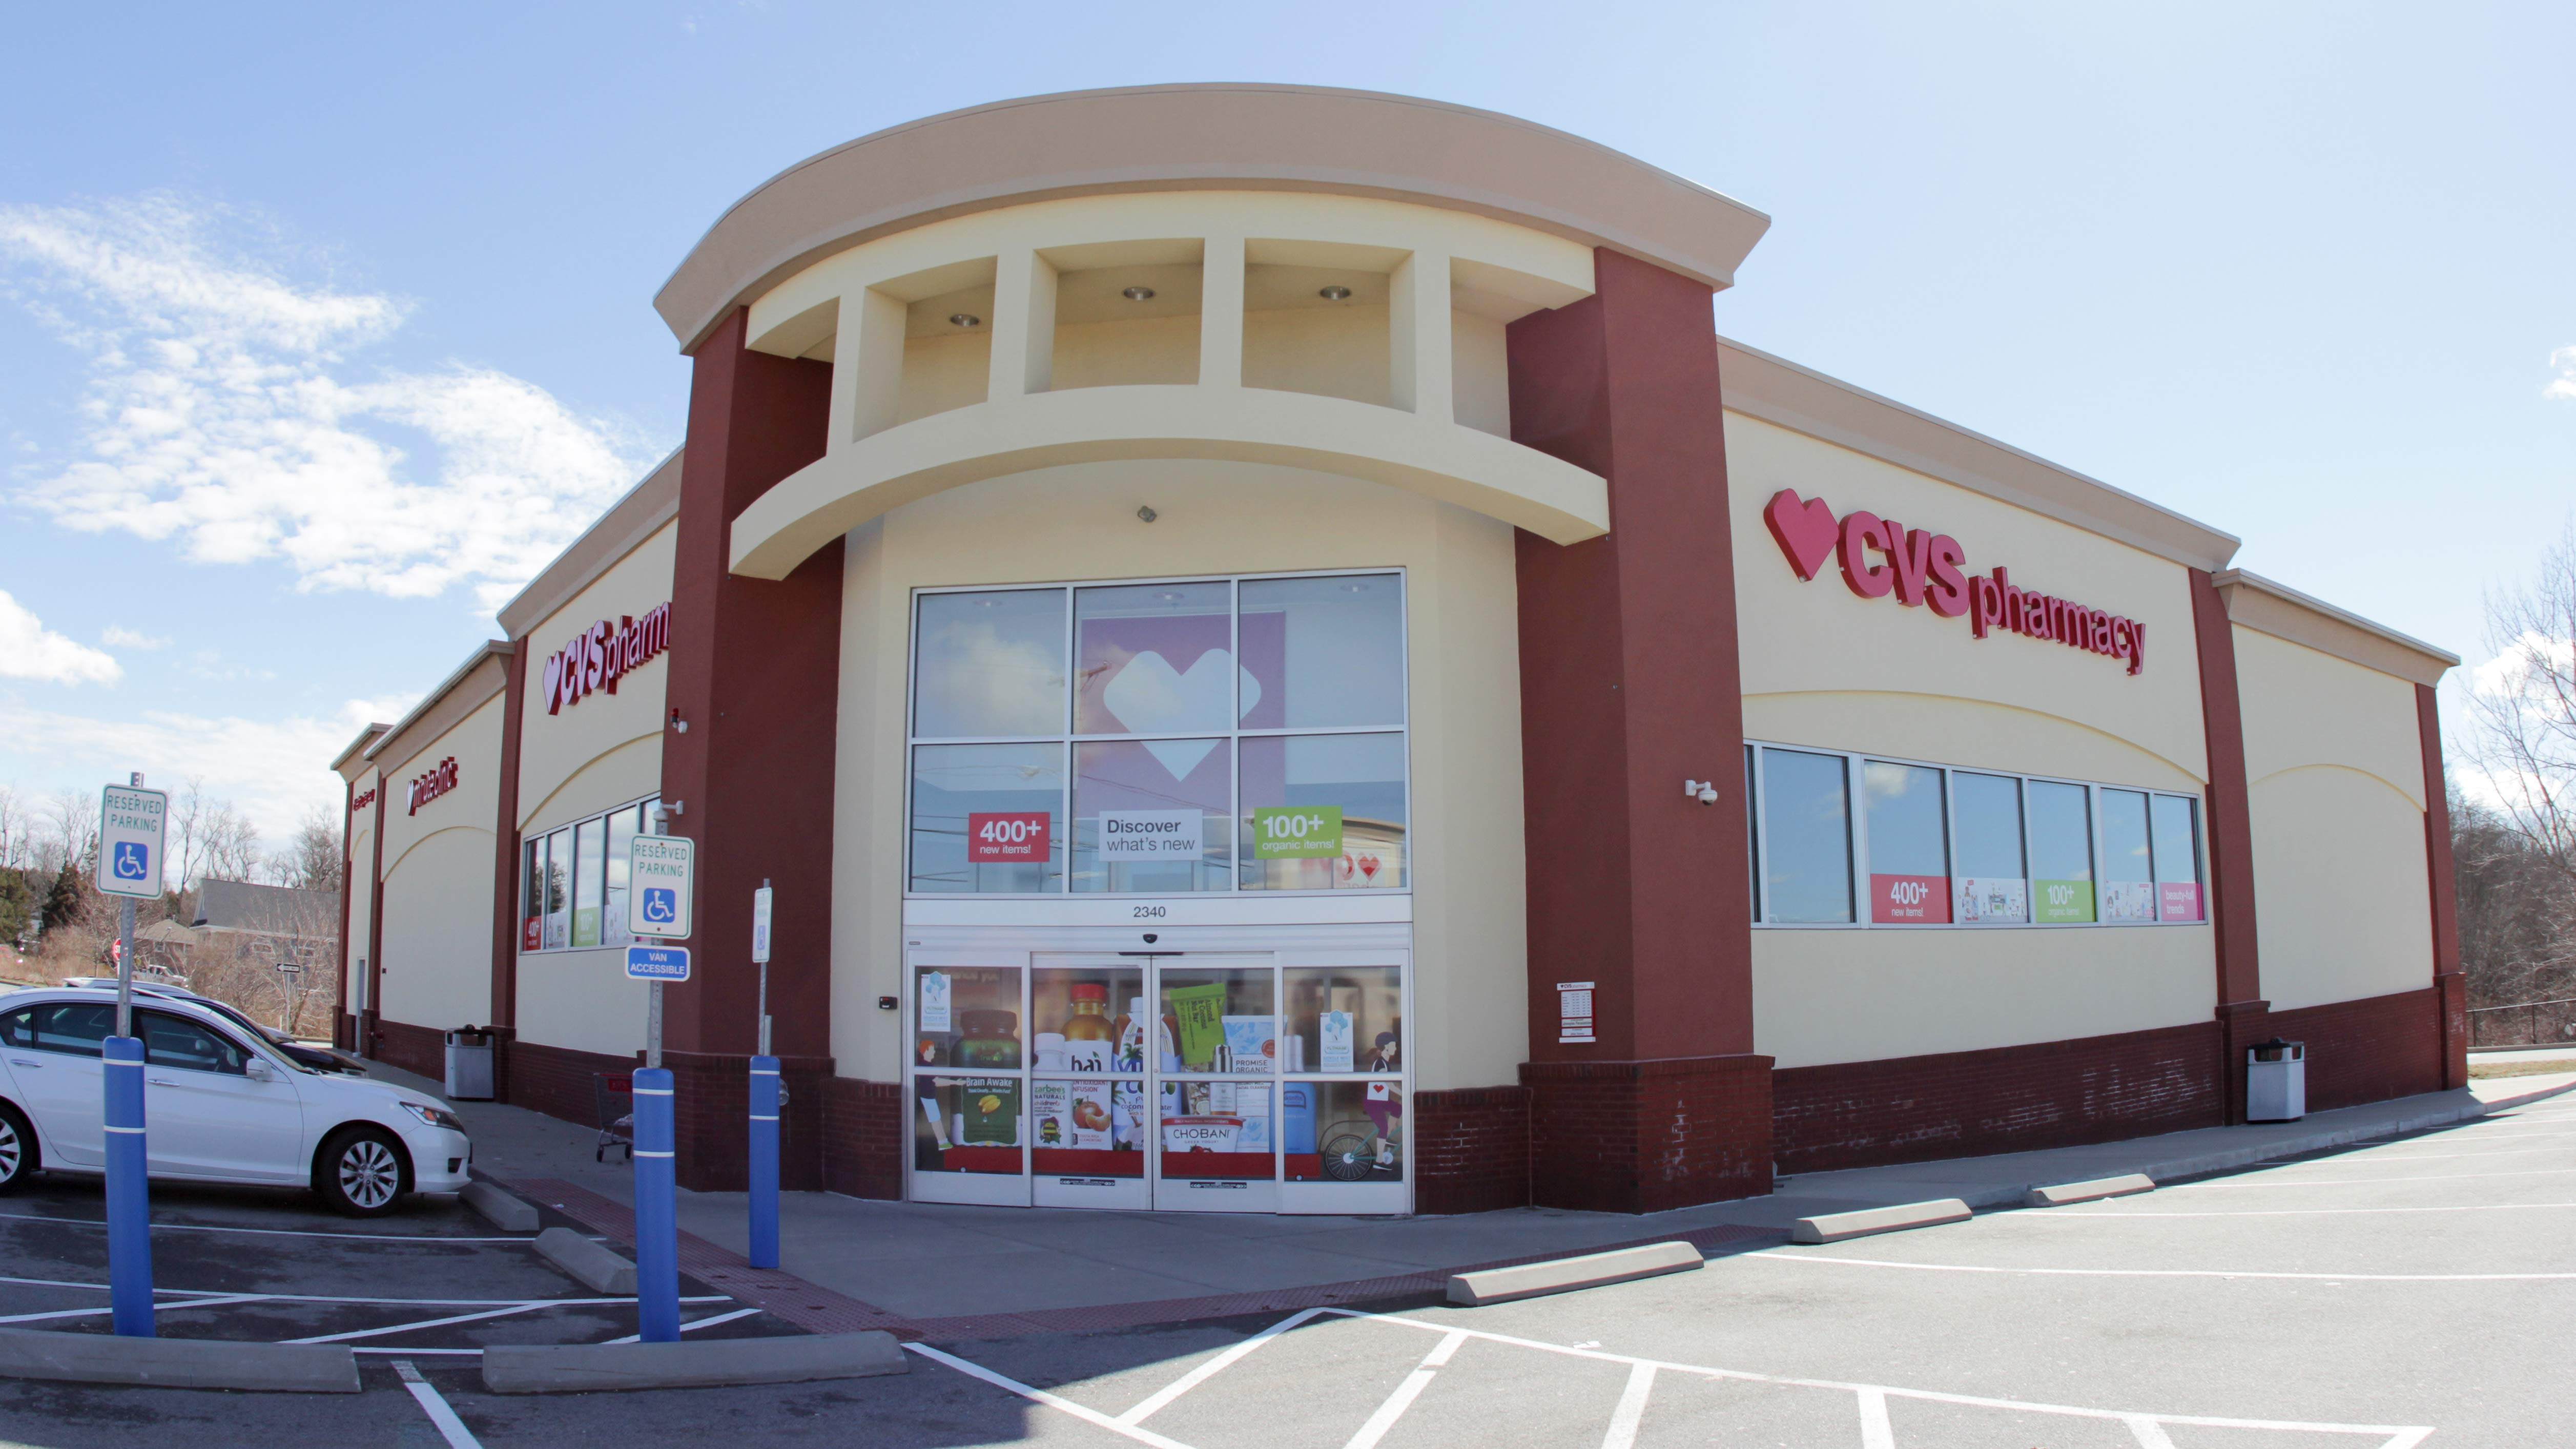 An exterior view of an unknown CVS Pharmacy store location.